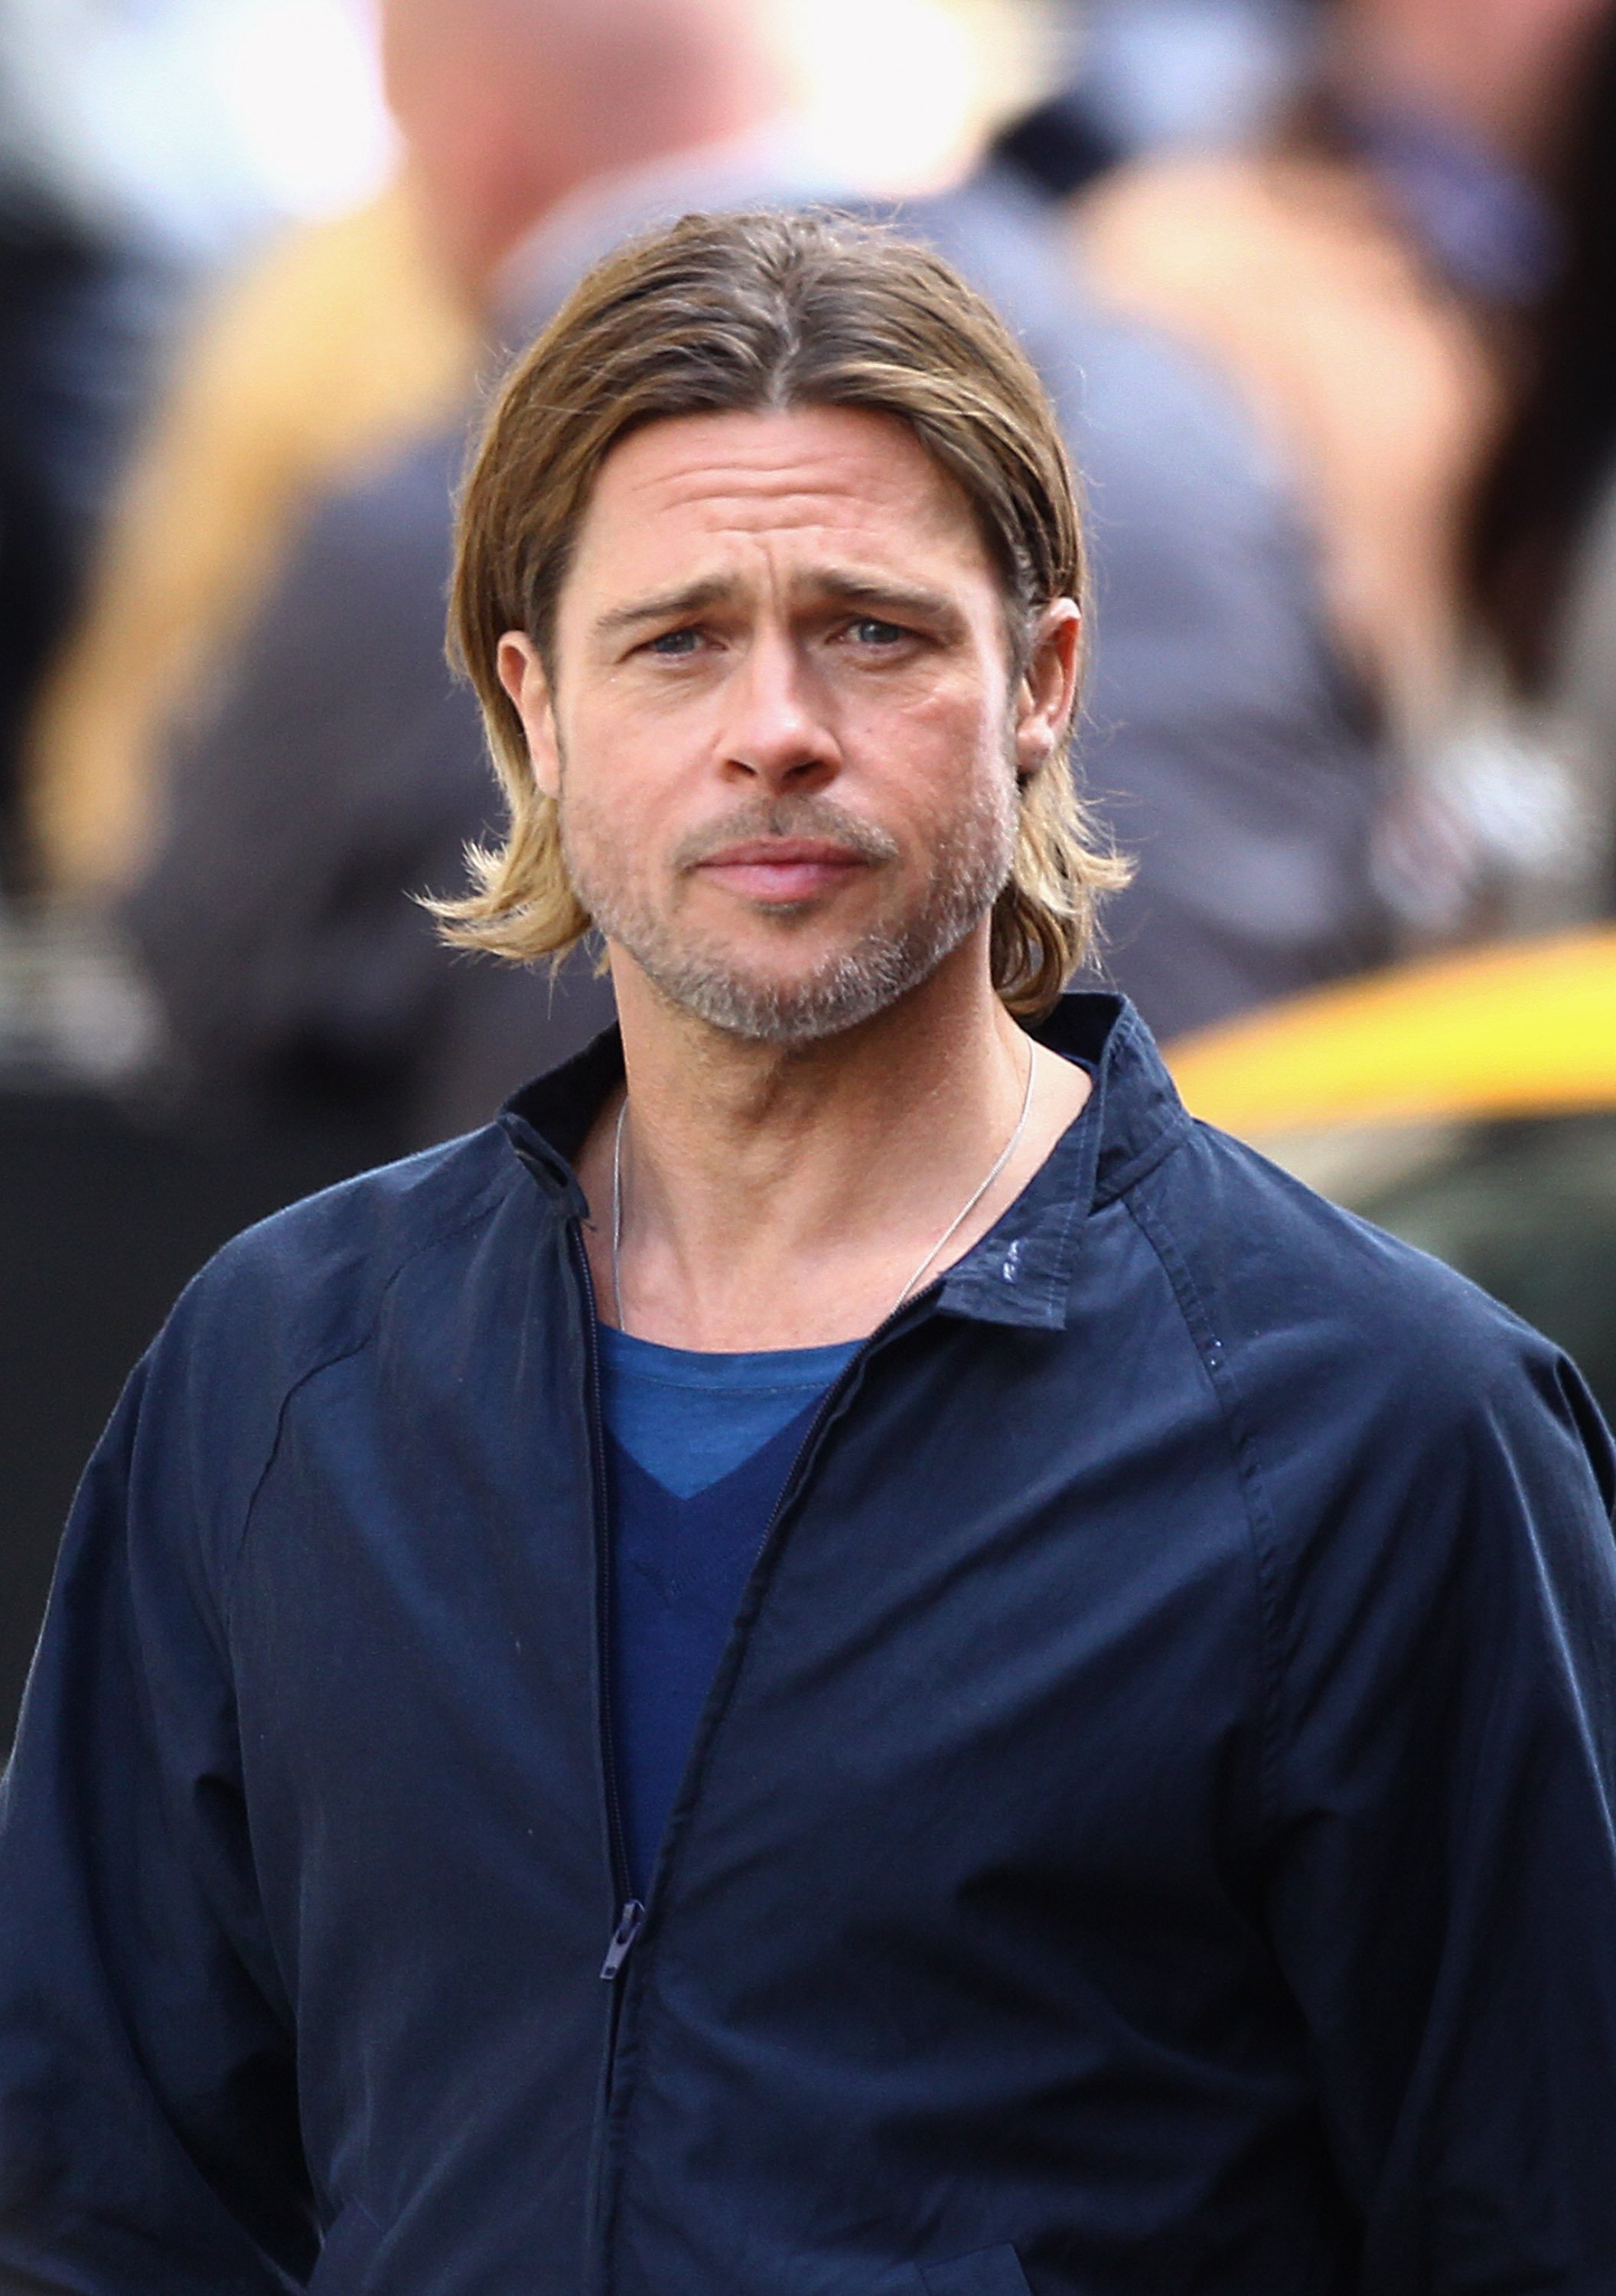 """Brad Pitt during his scene in the 2014 film """"World War Z"""" in Glasgow. 